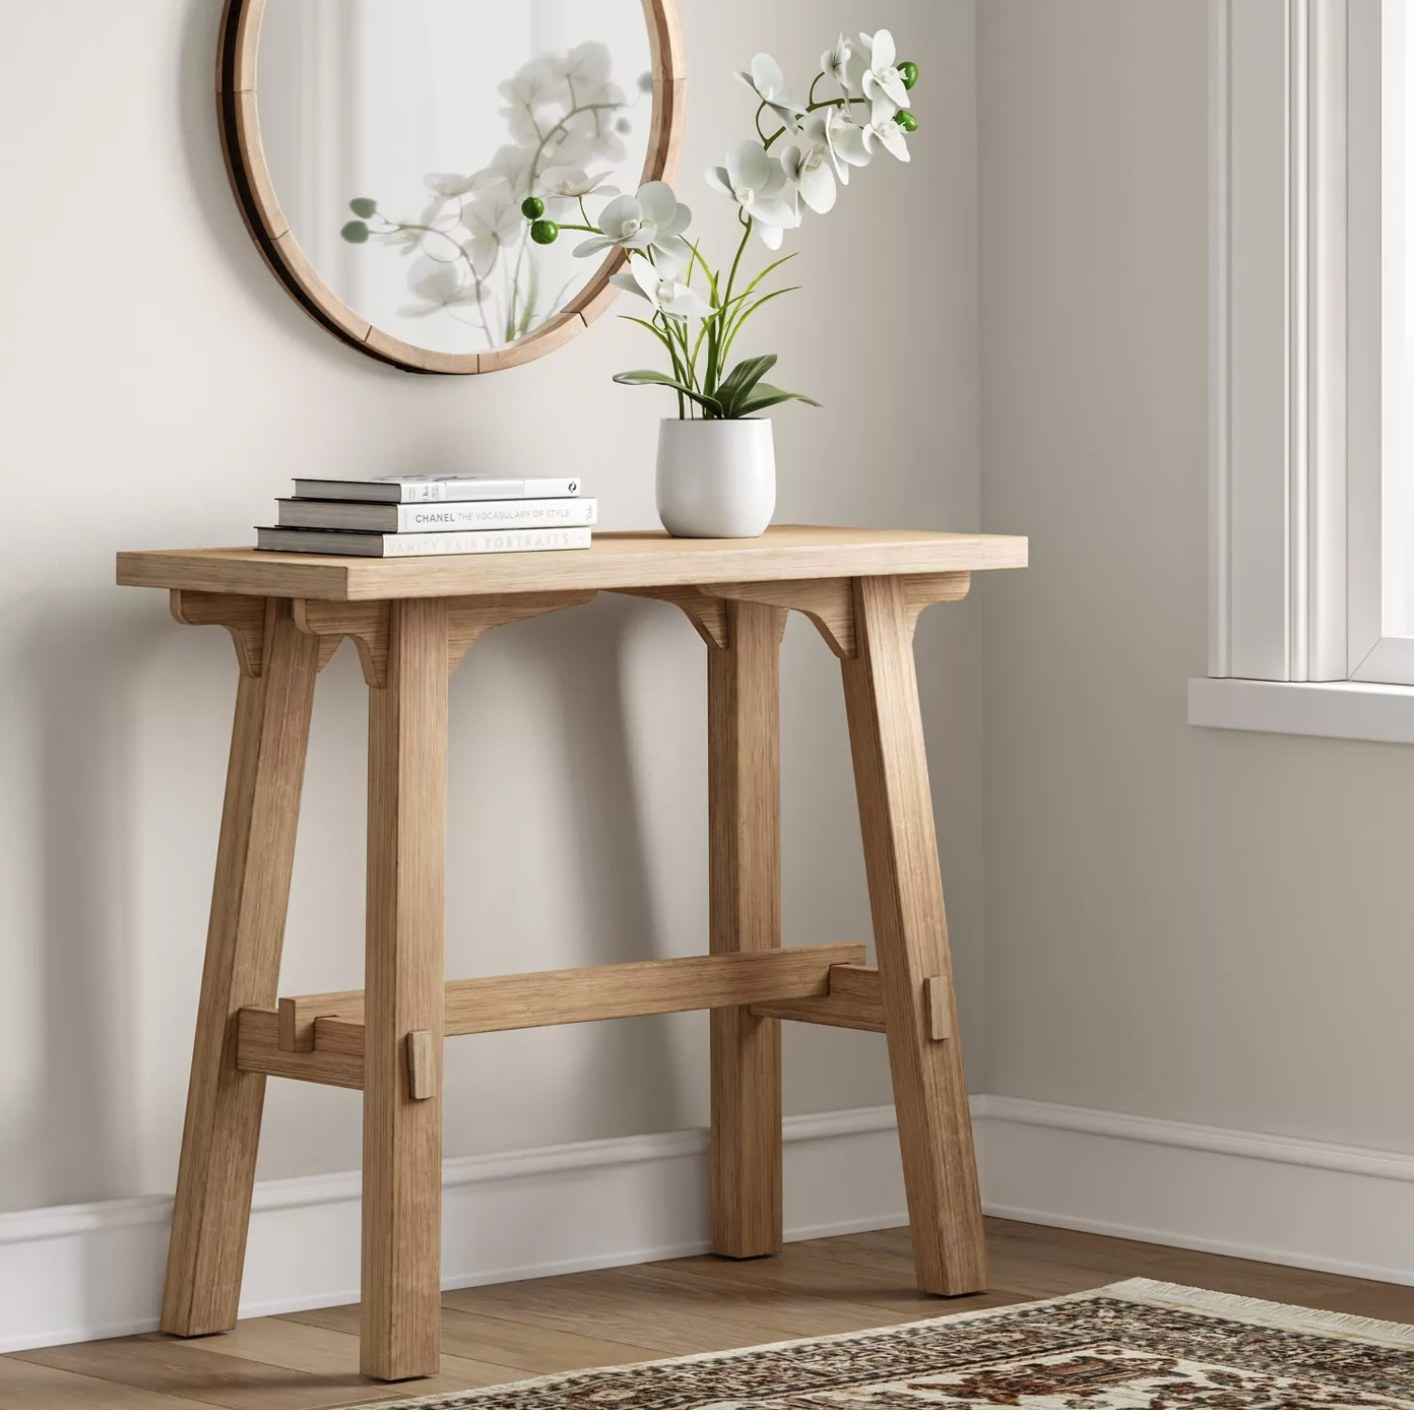 The wood console table